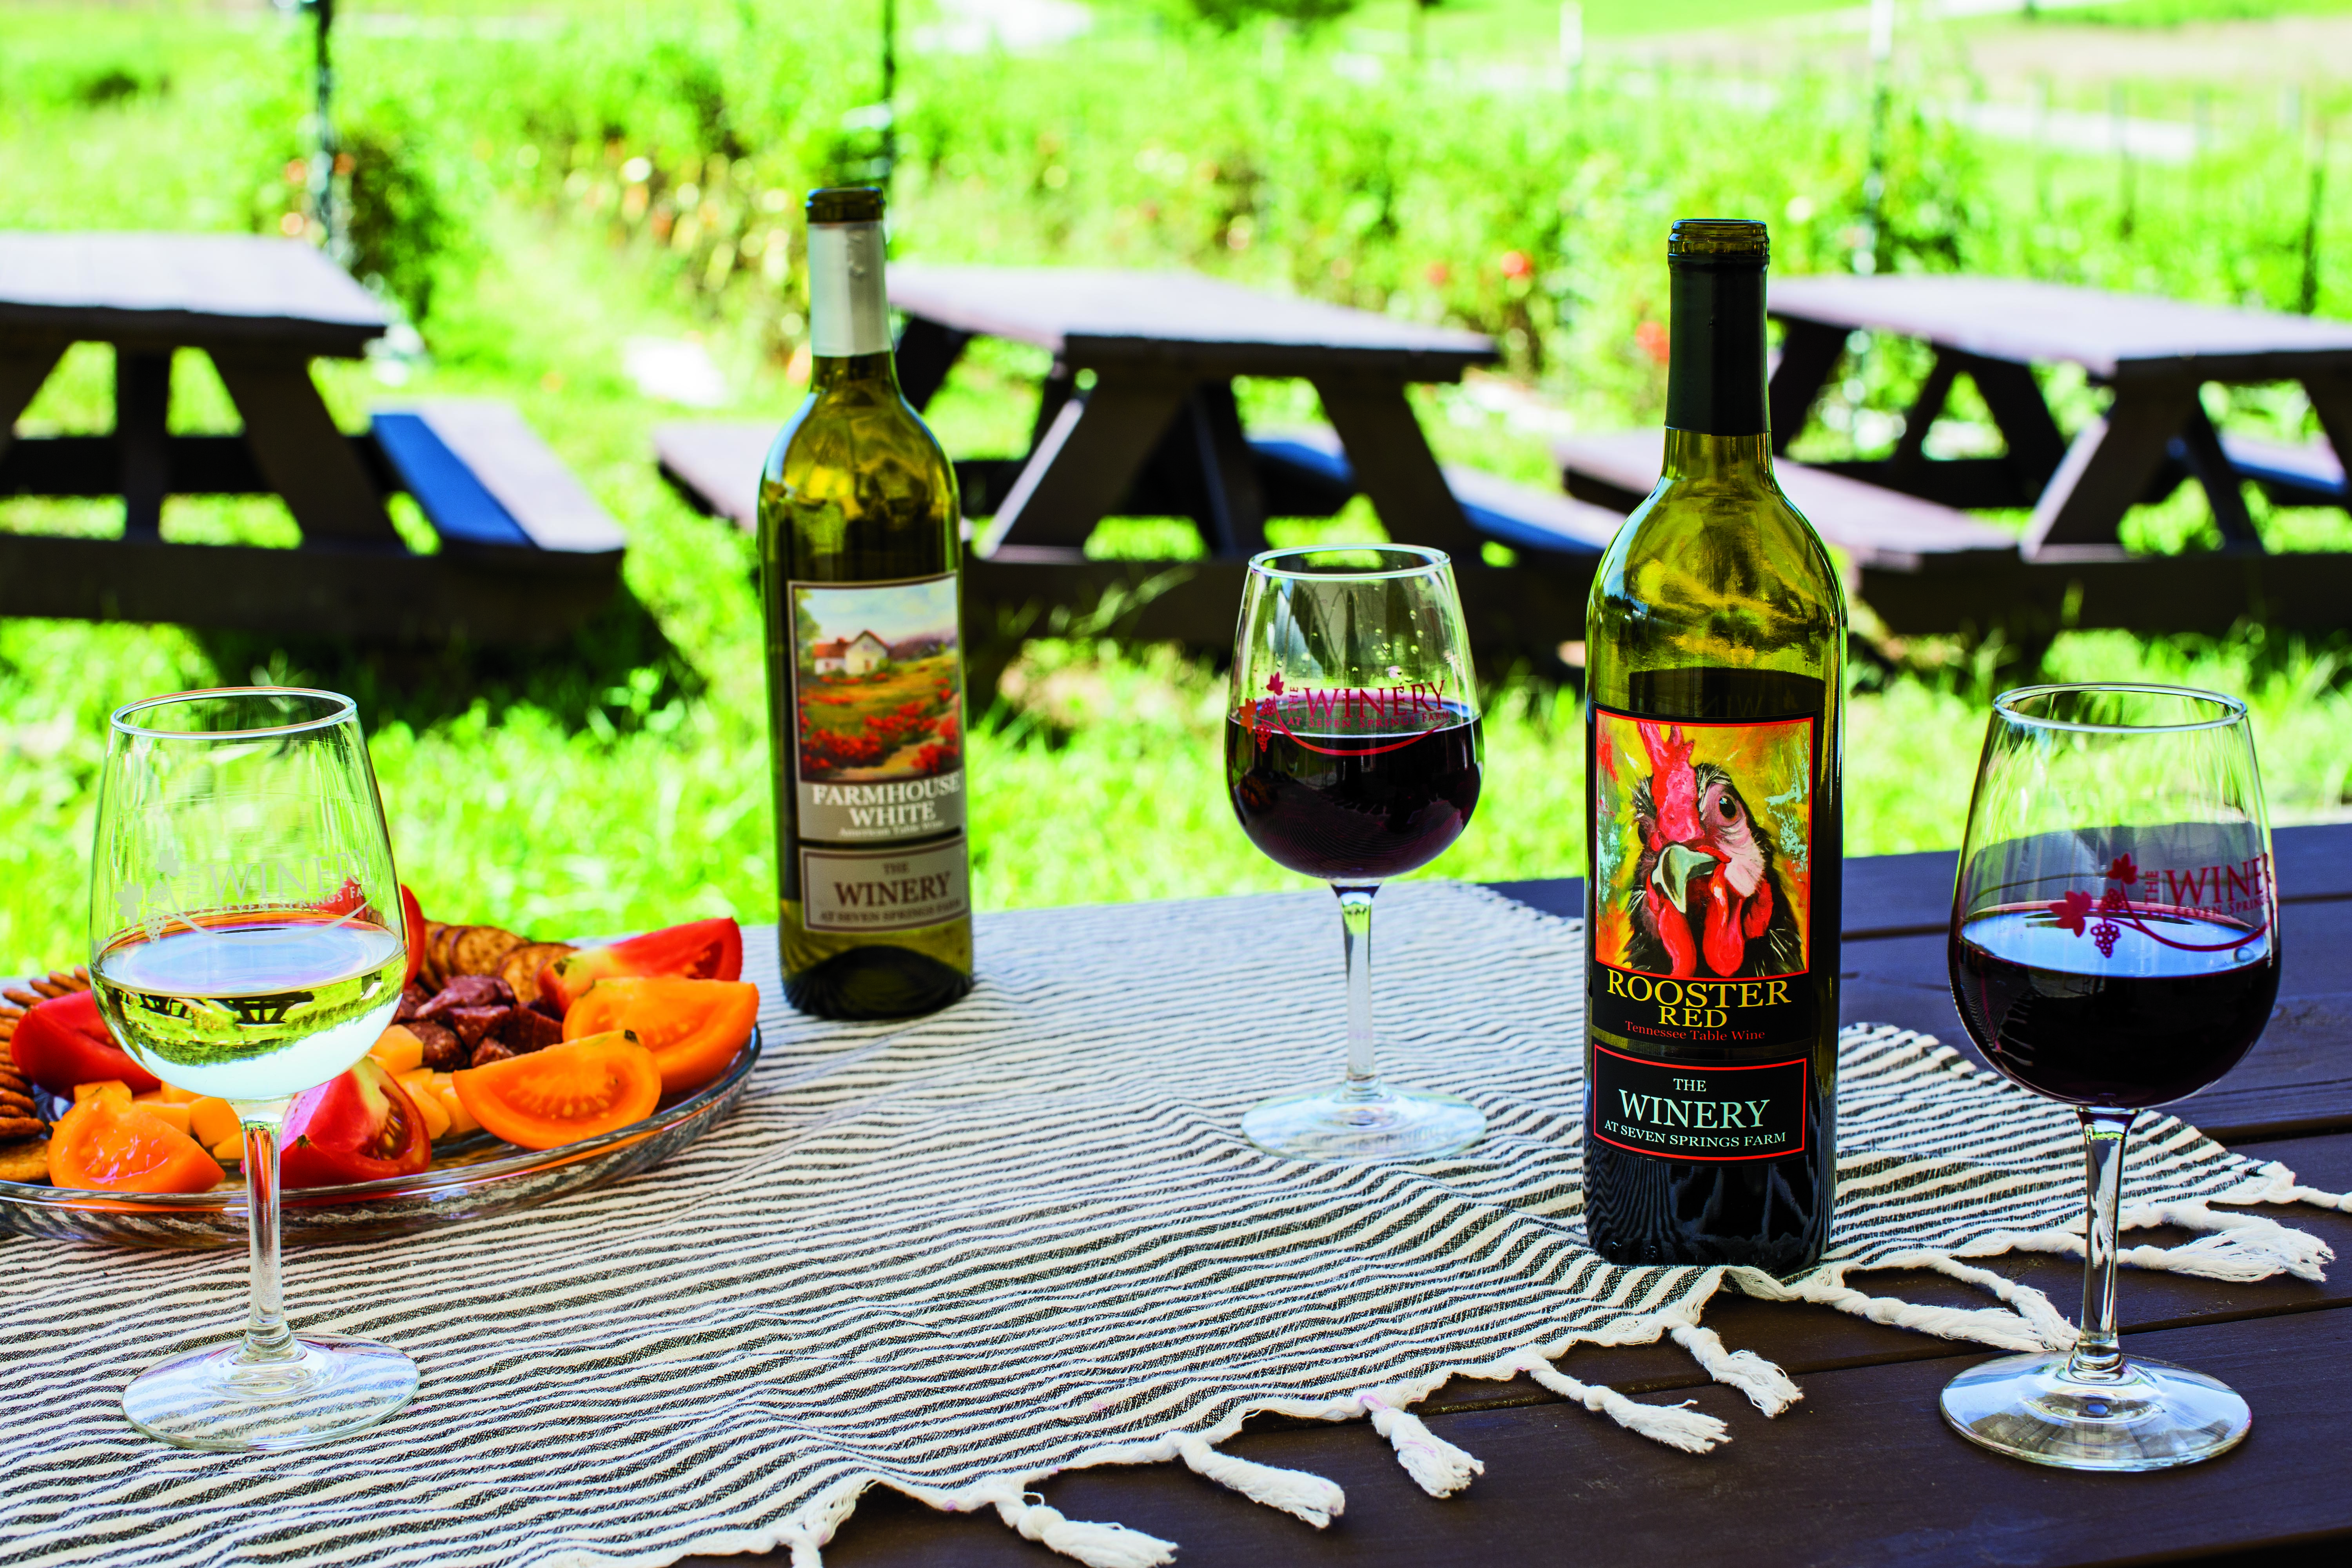 Sip some wine at the Winery at Seven Springs Farm. Photo credit: Andrea Behrends Photography